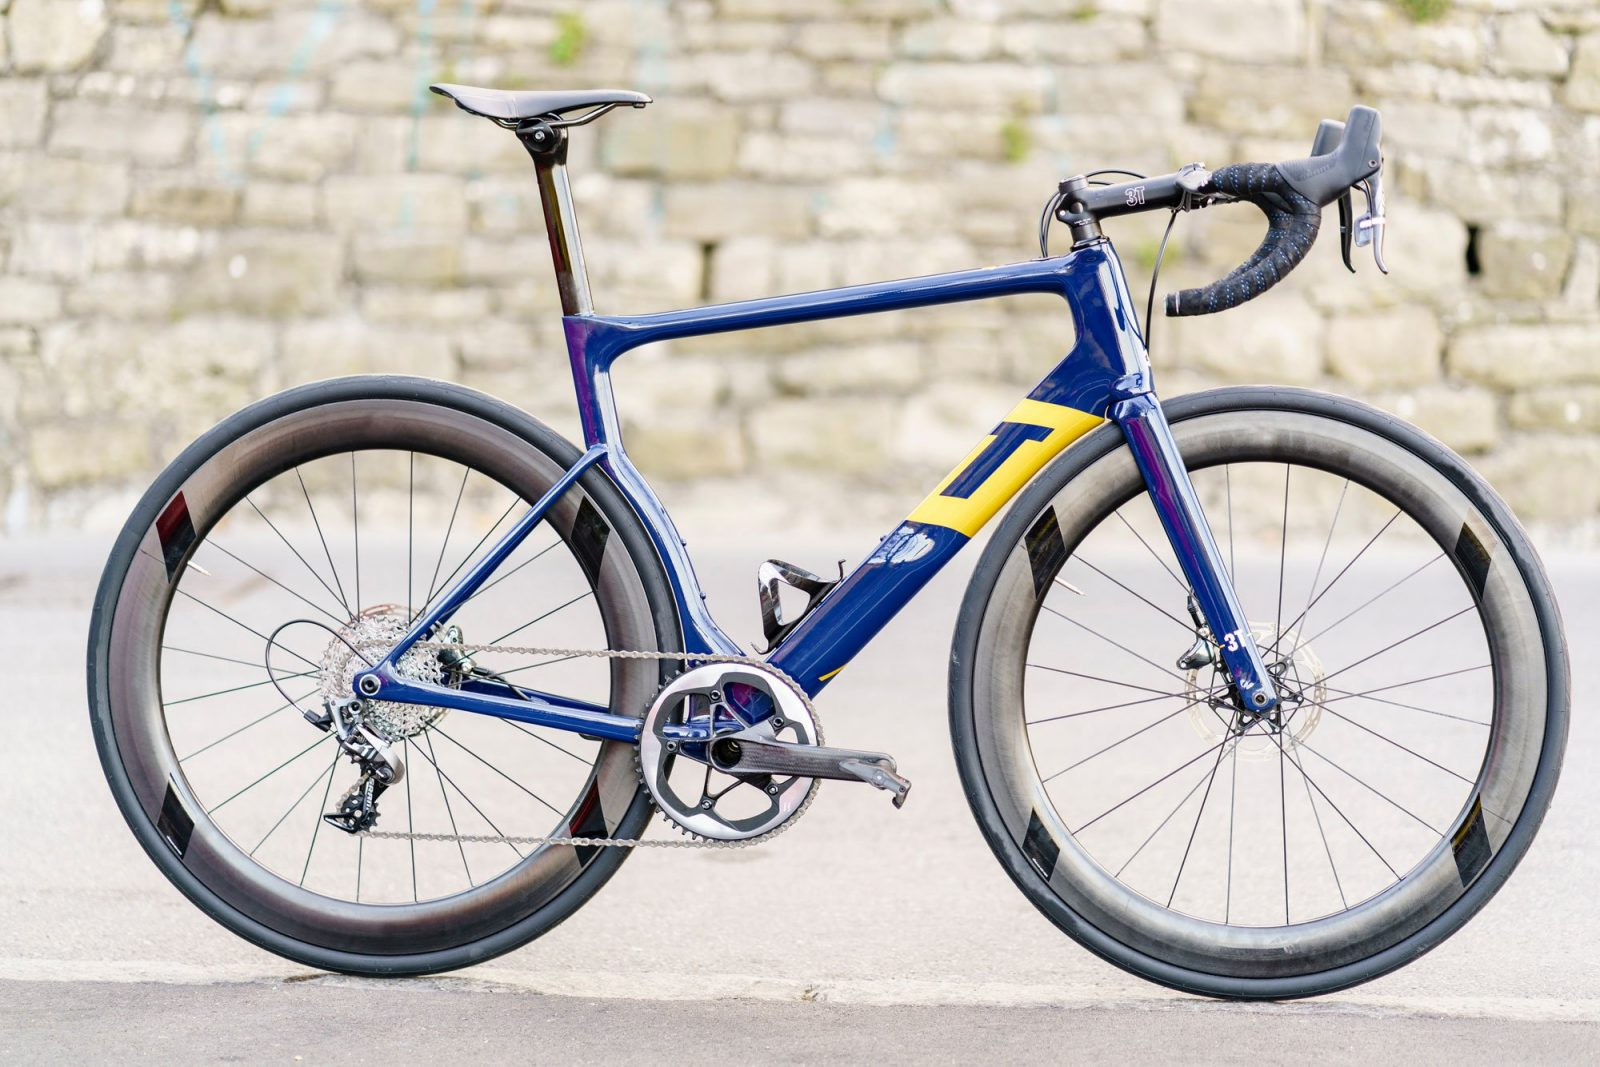 SRAM joins 3T as 2018 Aqua Blue Sport team bike is unveiled